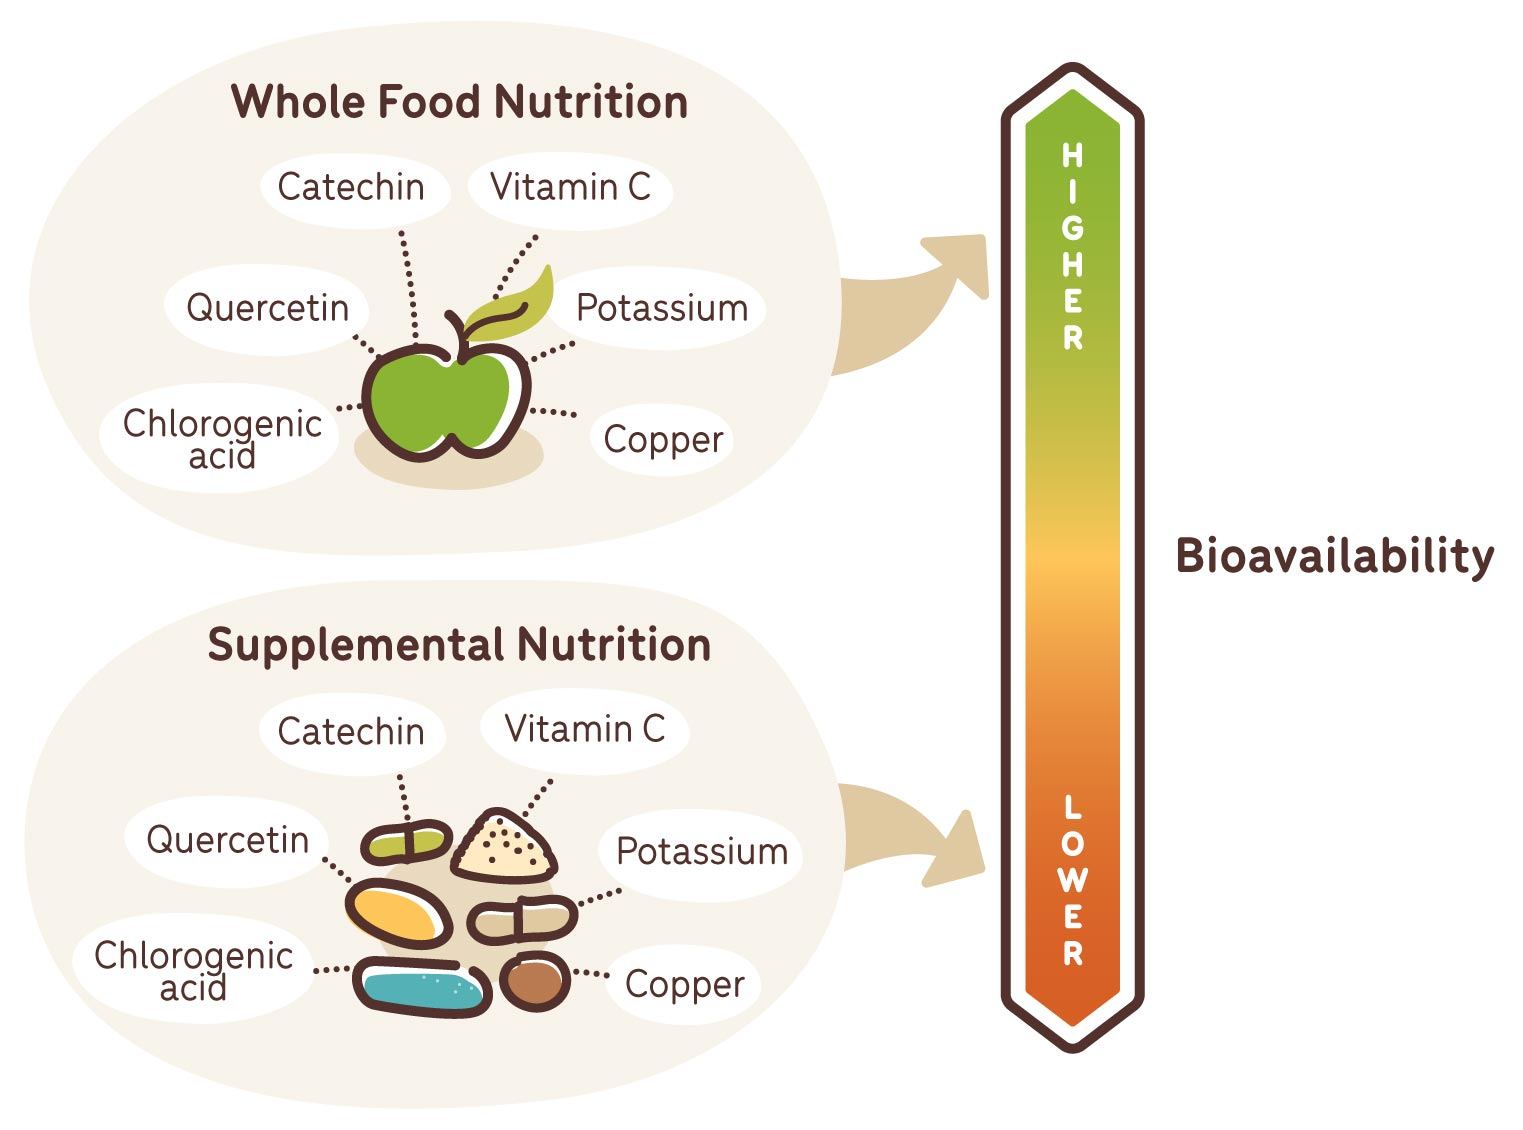 bioavailability in whole food nutrition versus supplemental nutrition